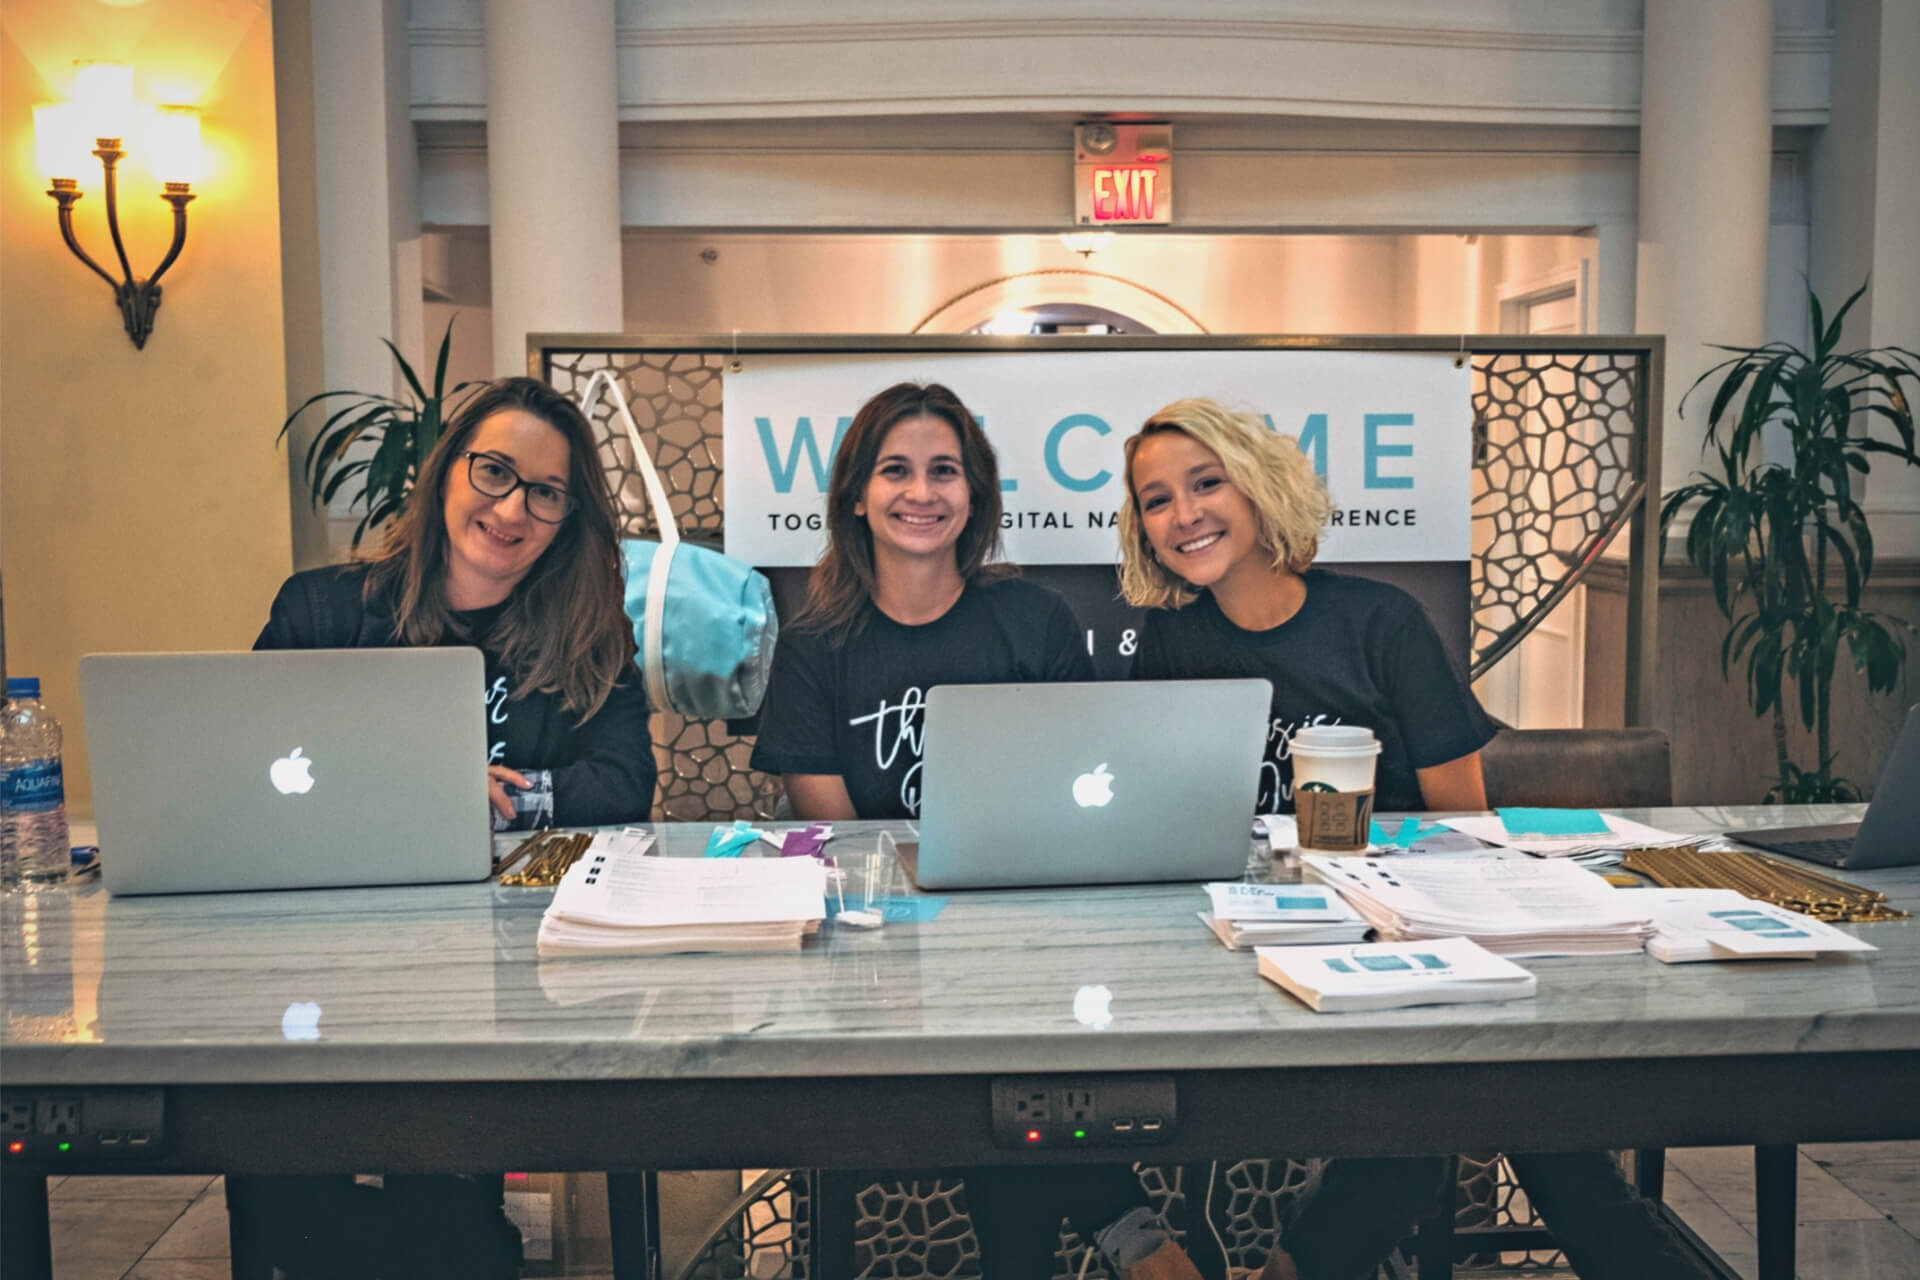 3 Women check people in at the 2019 National Conference